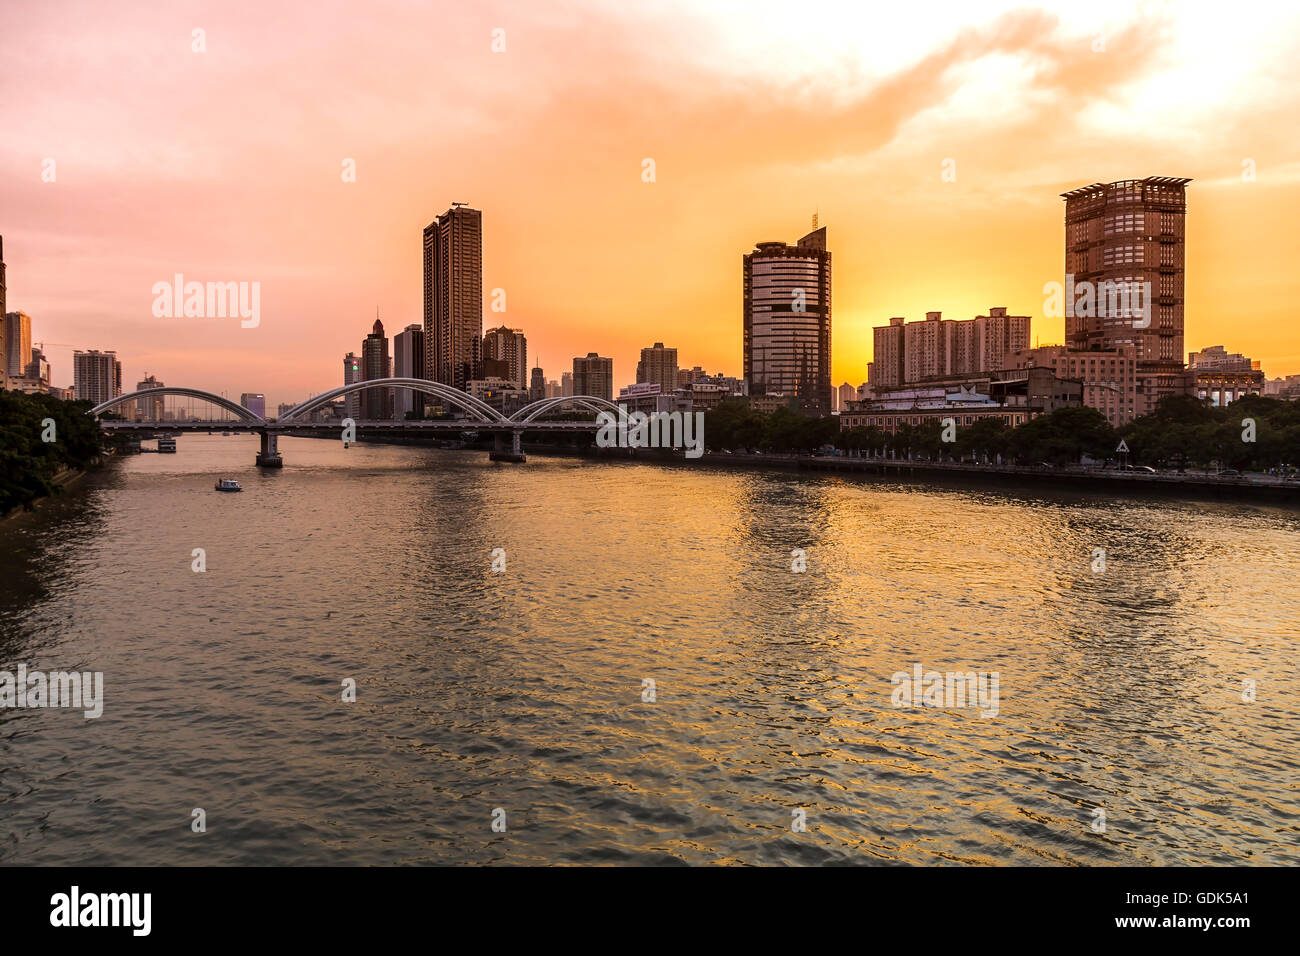 Sunset on the Pearl River, Guangzhou - Stock Image